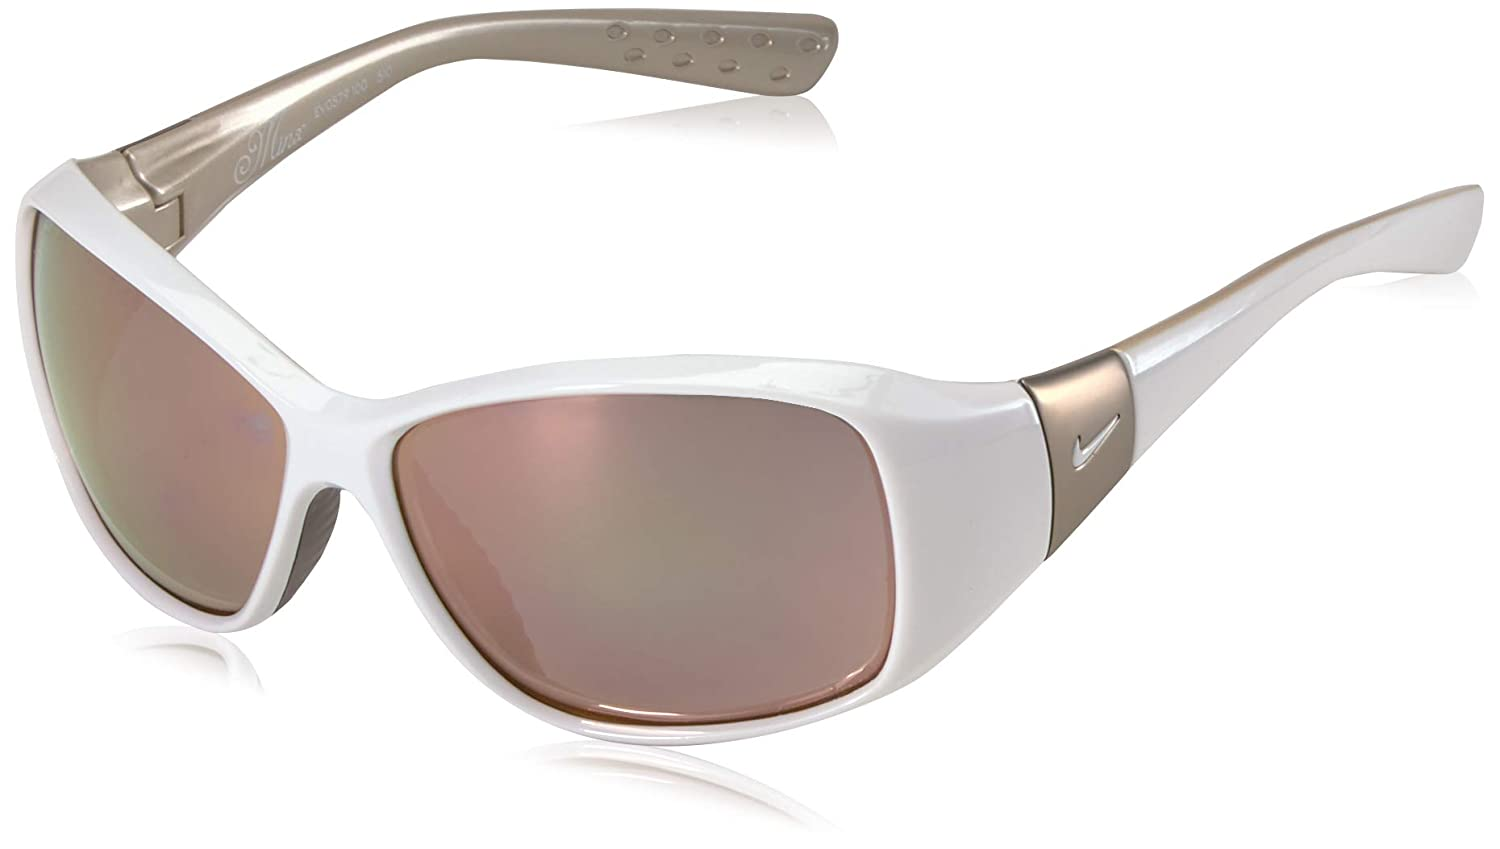 Nike Eyewear Women's Minx Rectangular Sunglasses, White, 59 mm